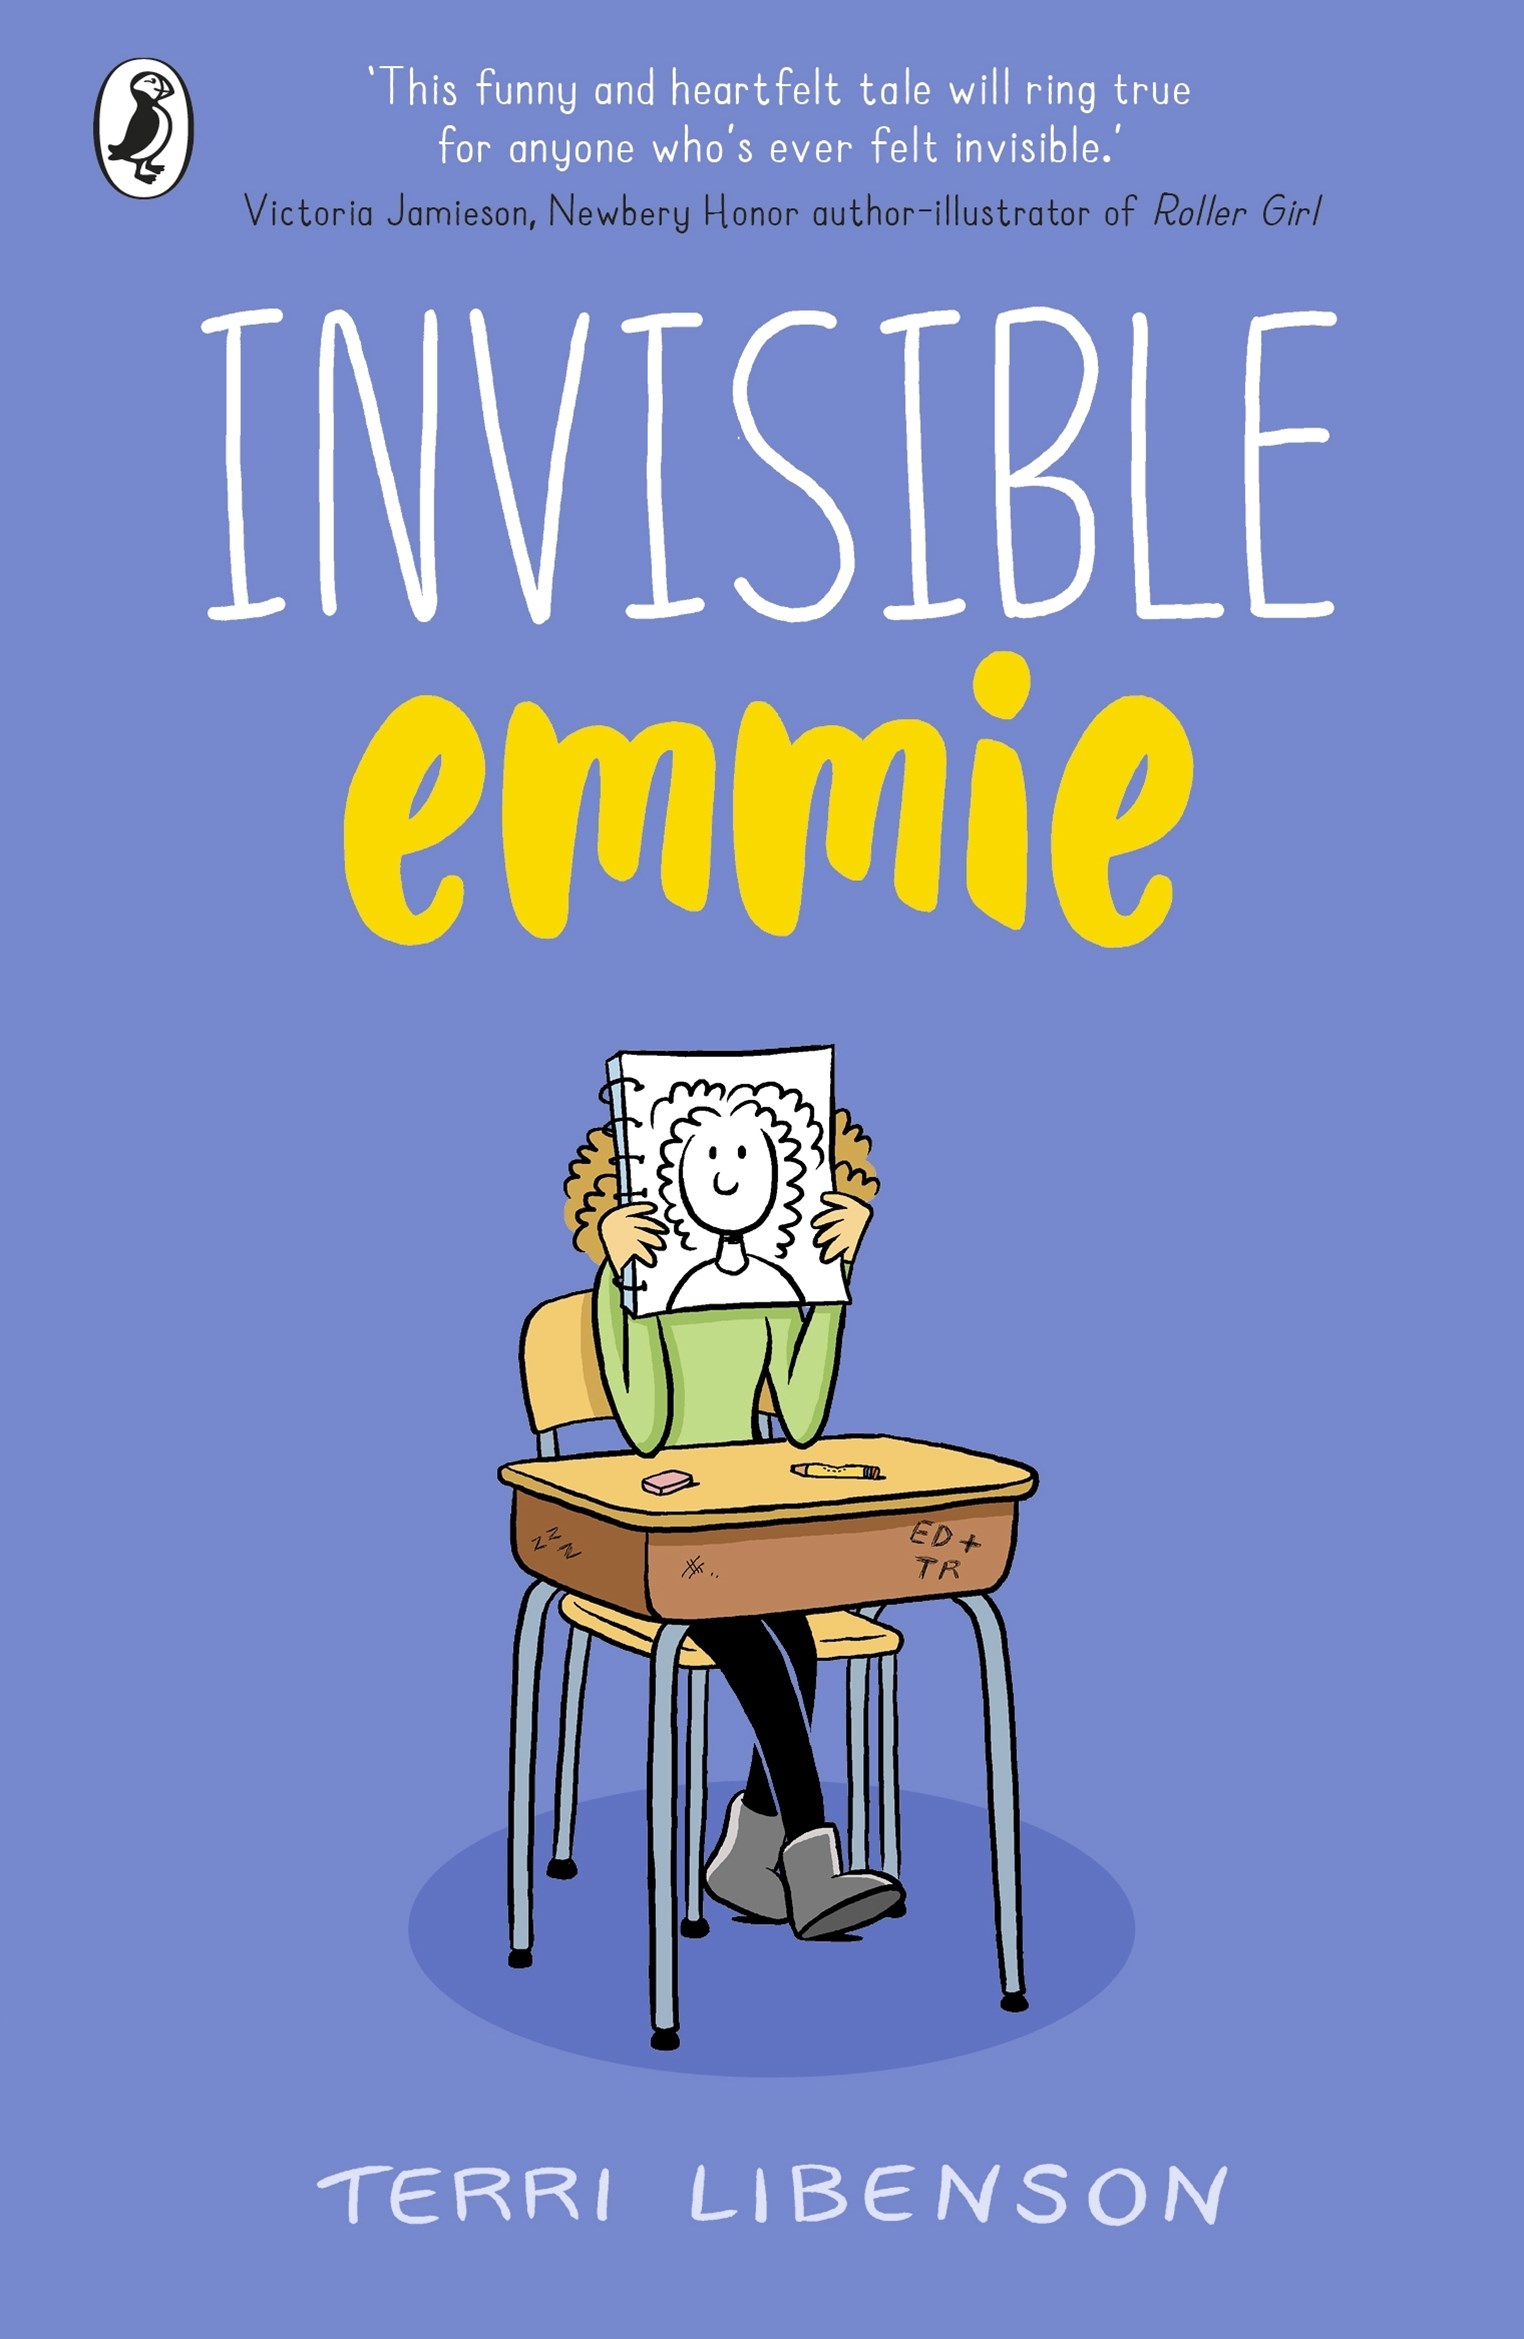 Invisible Emmie